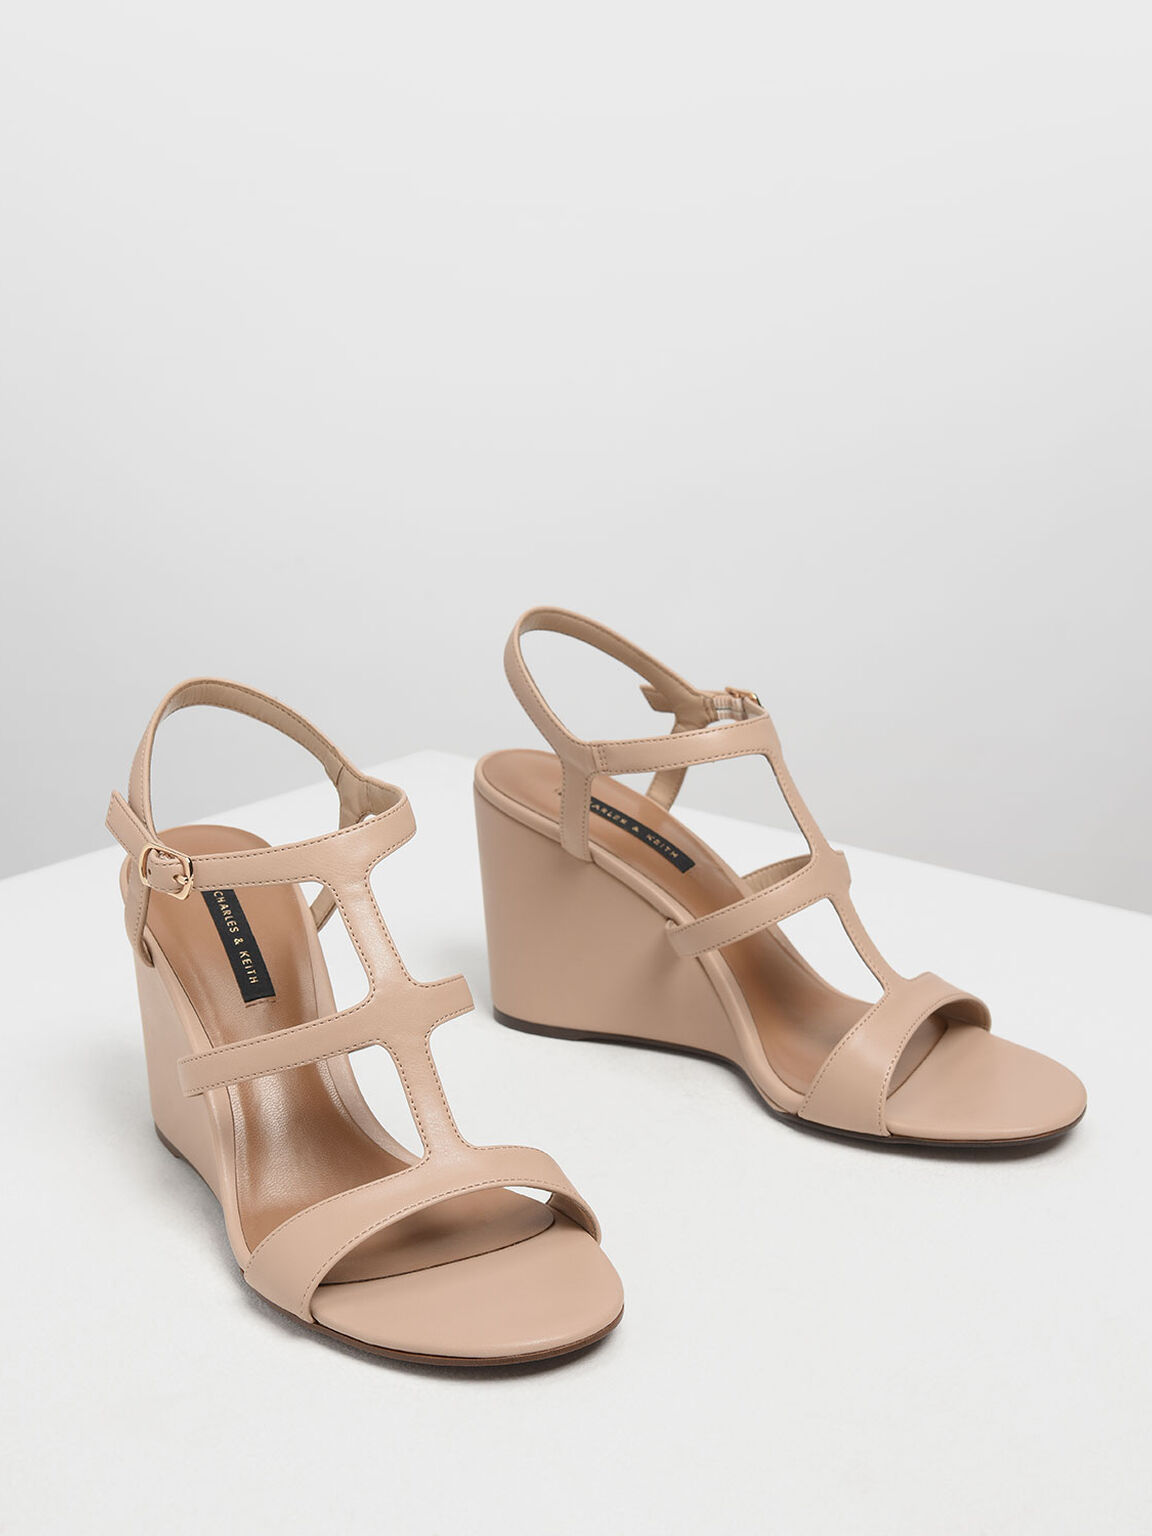 Strappy Wedges, Nude, hi-res